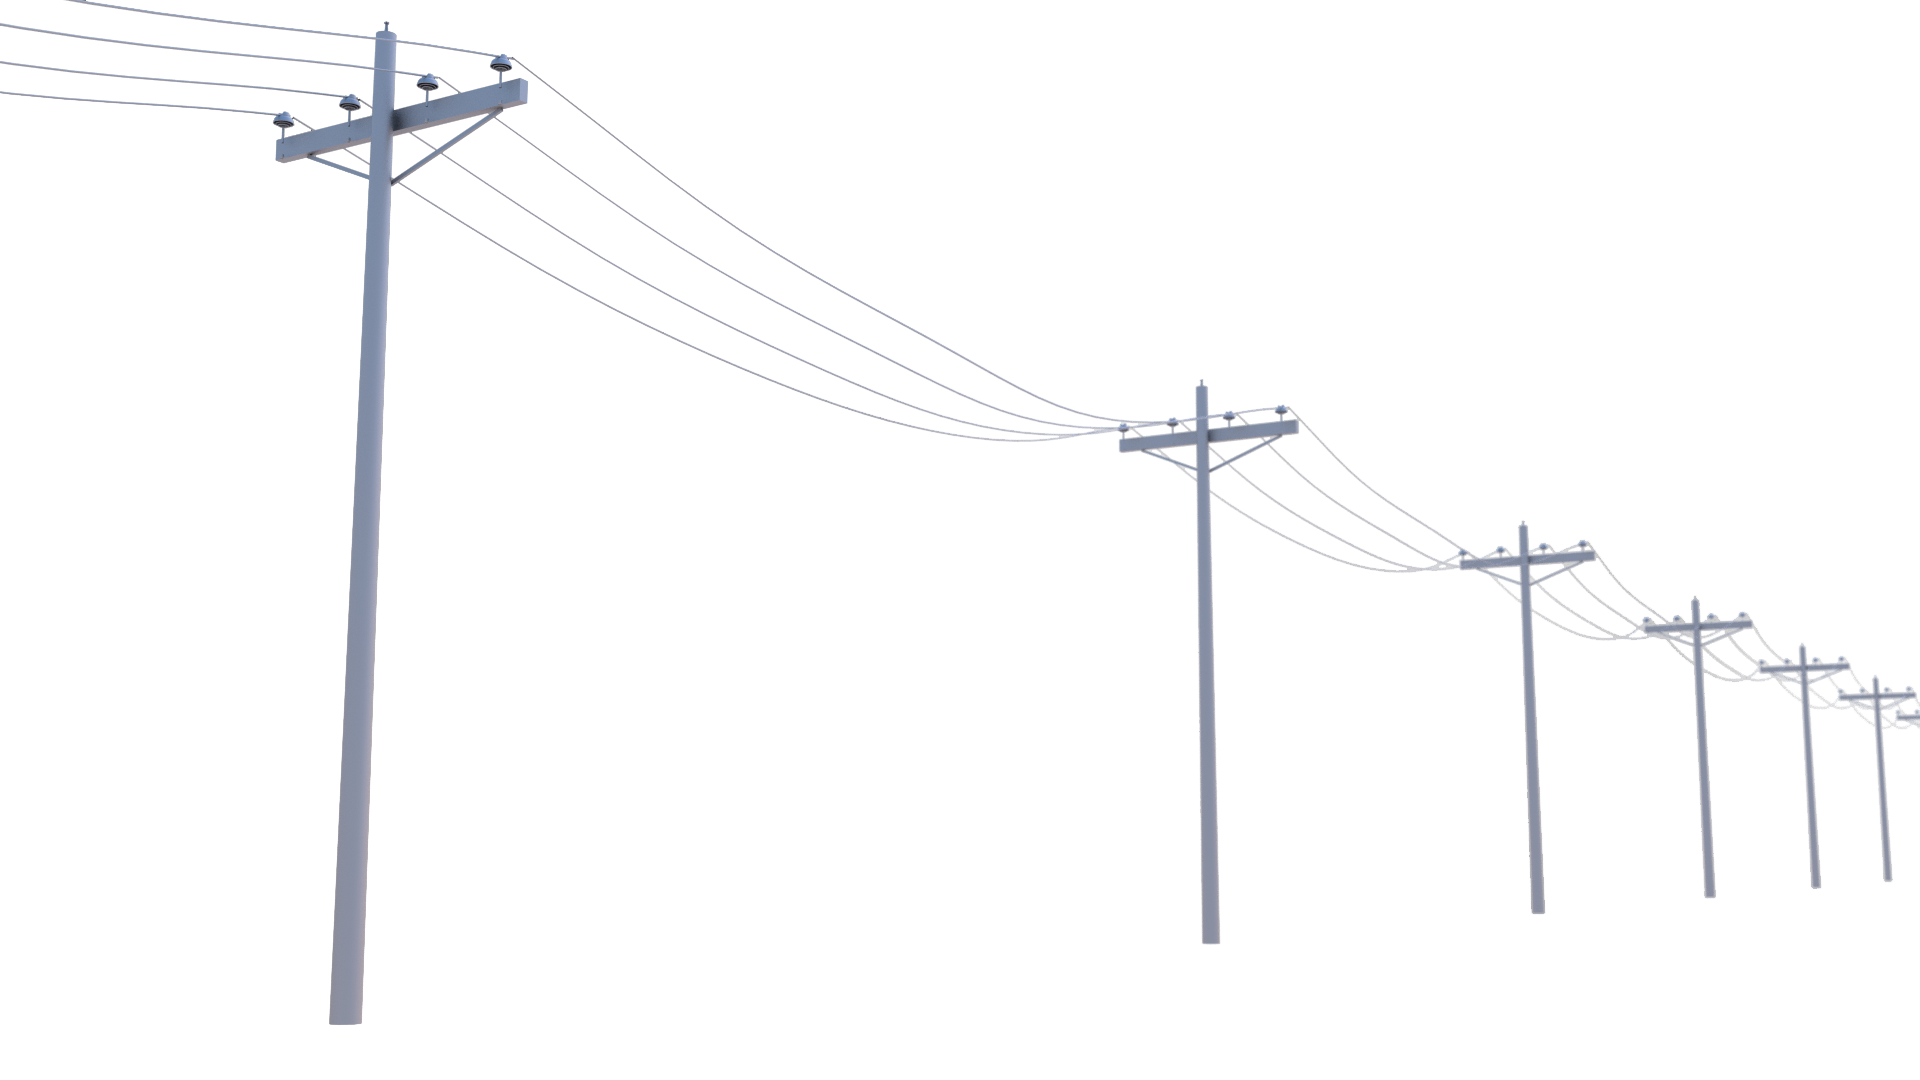 Free Electric Line Cliparts, Download Free Clip Art, Free.